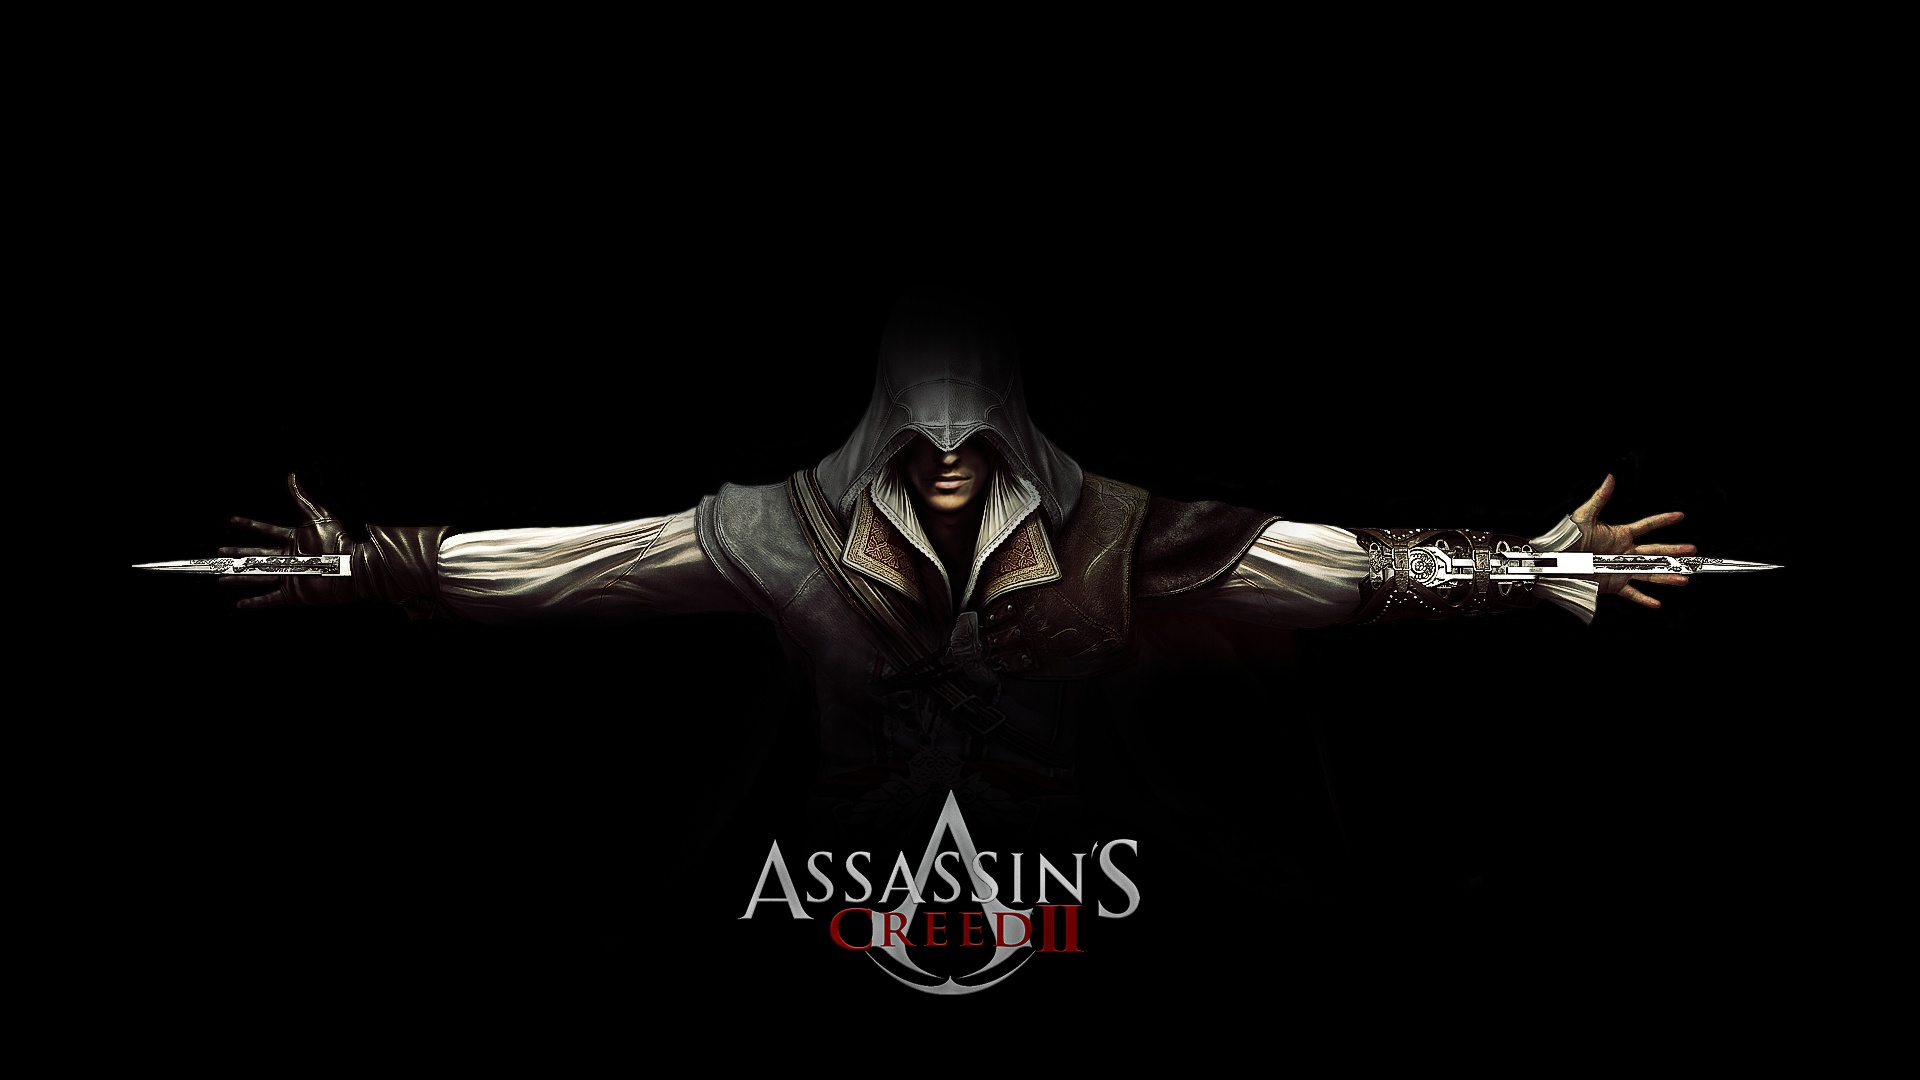 assassin cree II black wallpaper